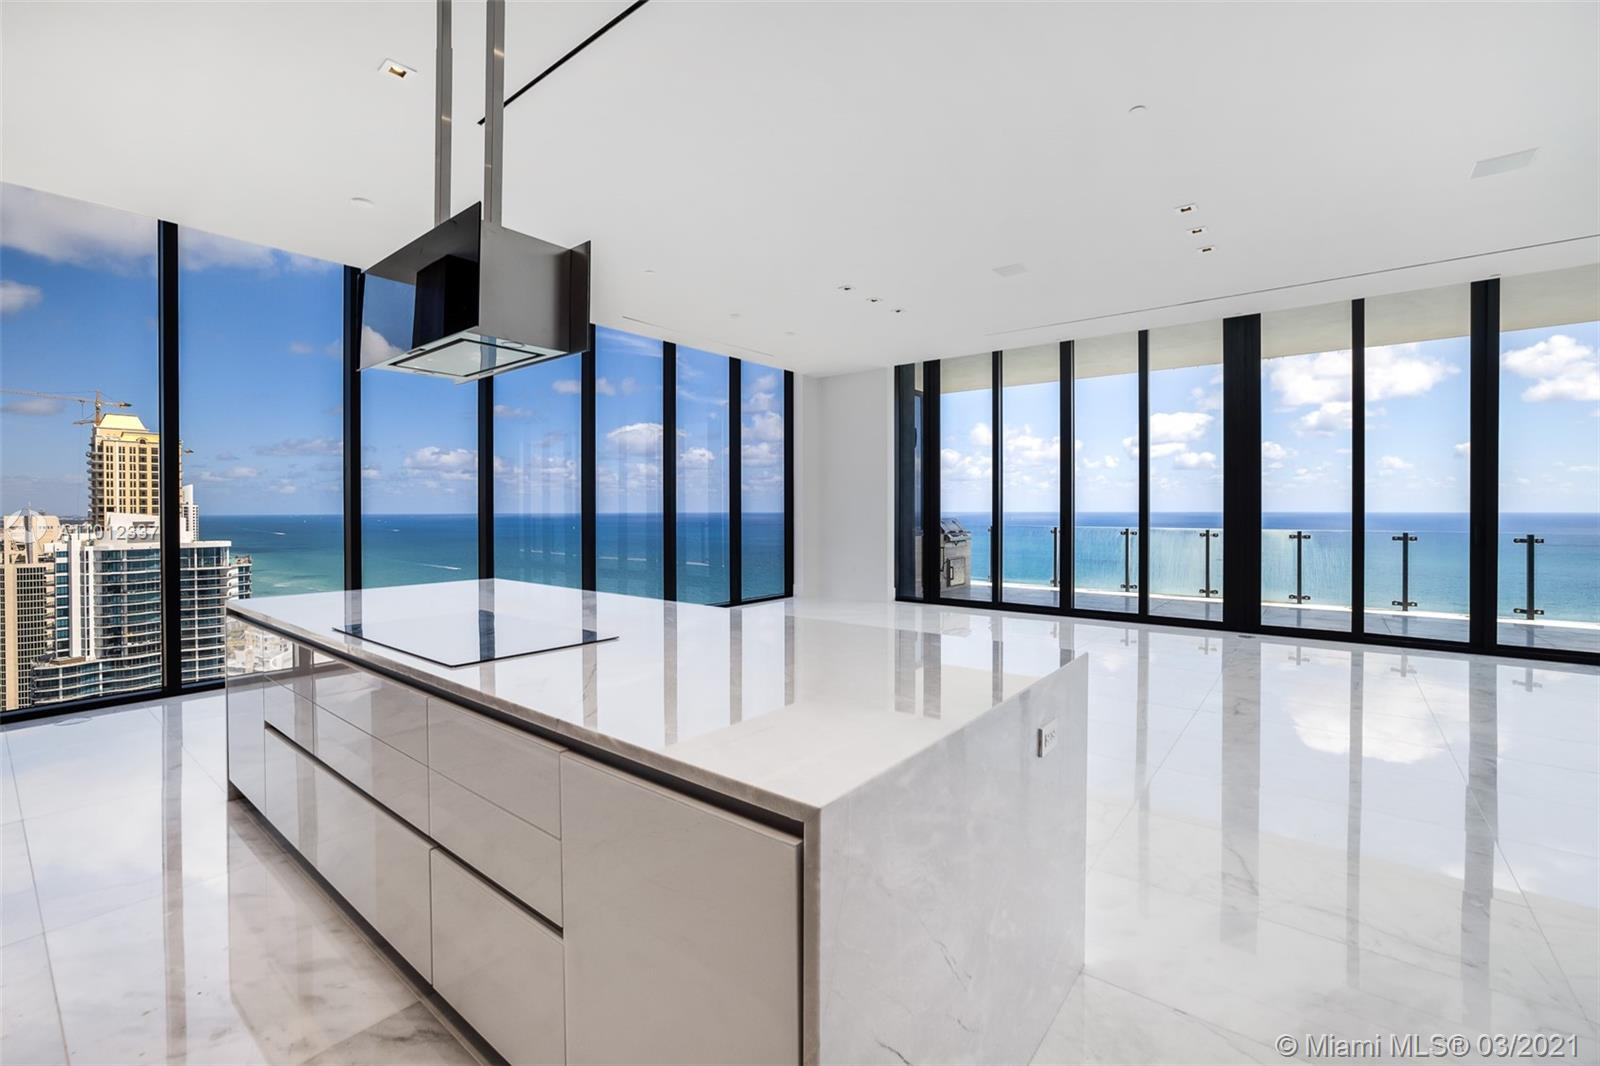 Enjoy unobstructed direct ocean views from this high floor corner residence in Muse Sunny Isles Beach. This never lived in 3bed/3.5 bath + den smart home has some of Sunny Isles best panoramic views, as the 37th floor fully clears Ocean IV to the North. Muse is known for its sleek and modern design, with #3701 boasting interior features such as: a private foyer entry, 12' ceilings, book-matched Italian kitchen cabinetry, marble floors throughout, and an expansive living area. Exceptional principal suite w/midnight bar & spa-like bath. Expansive walk-in closet w/leather inserts & up lighting. Uniquely large outdoor terrace w/summer kitchen. Amenities include infinity edge pool, breakfast for owners, food/beverage service, house car, automated parking system, sauna & fitness center.